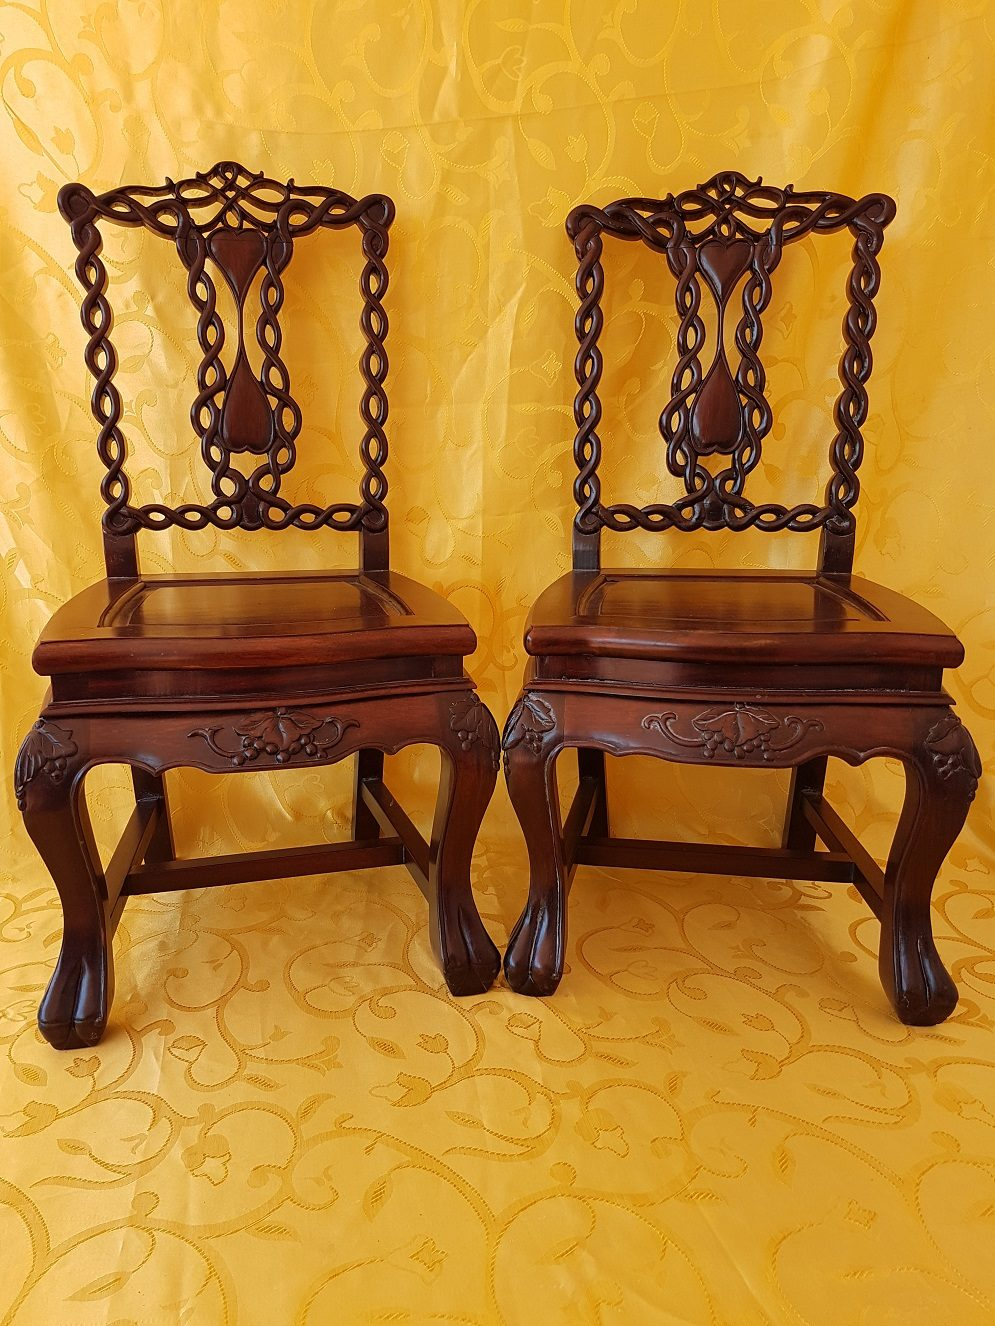 Pair of Chinese rose wood childrens chairs